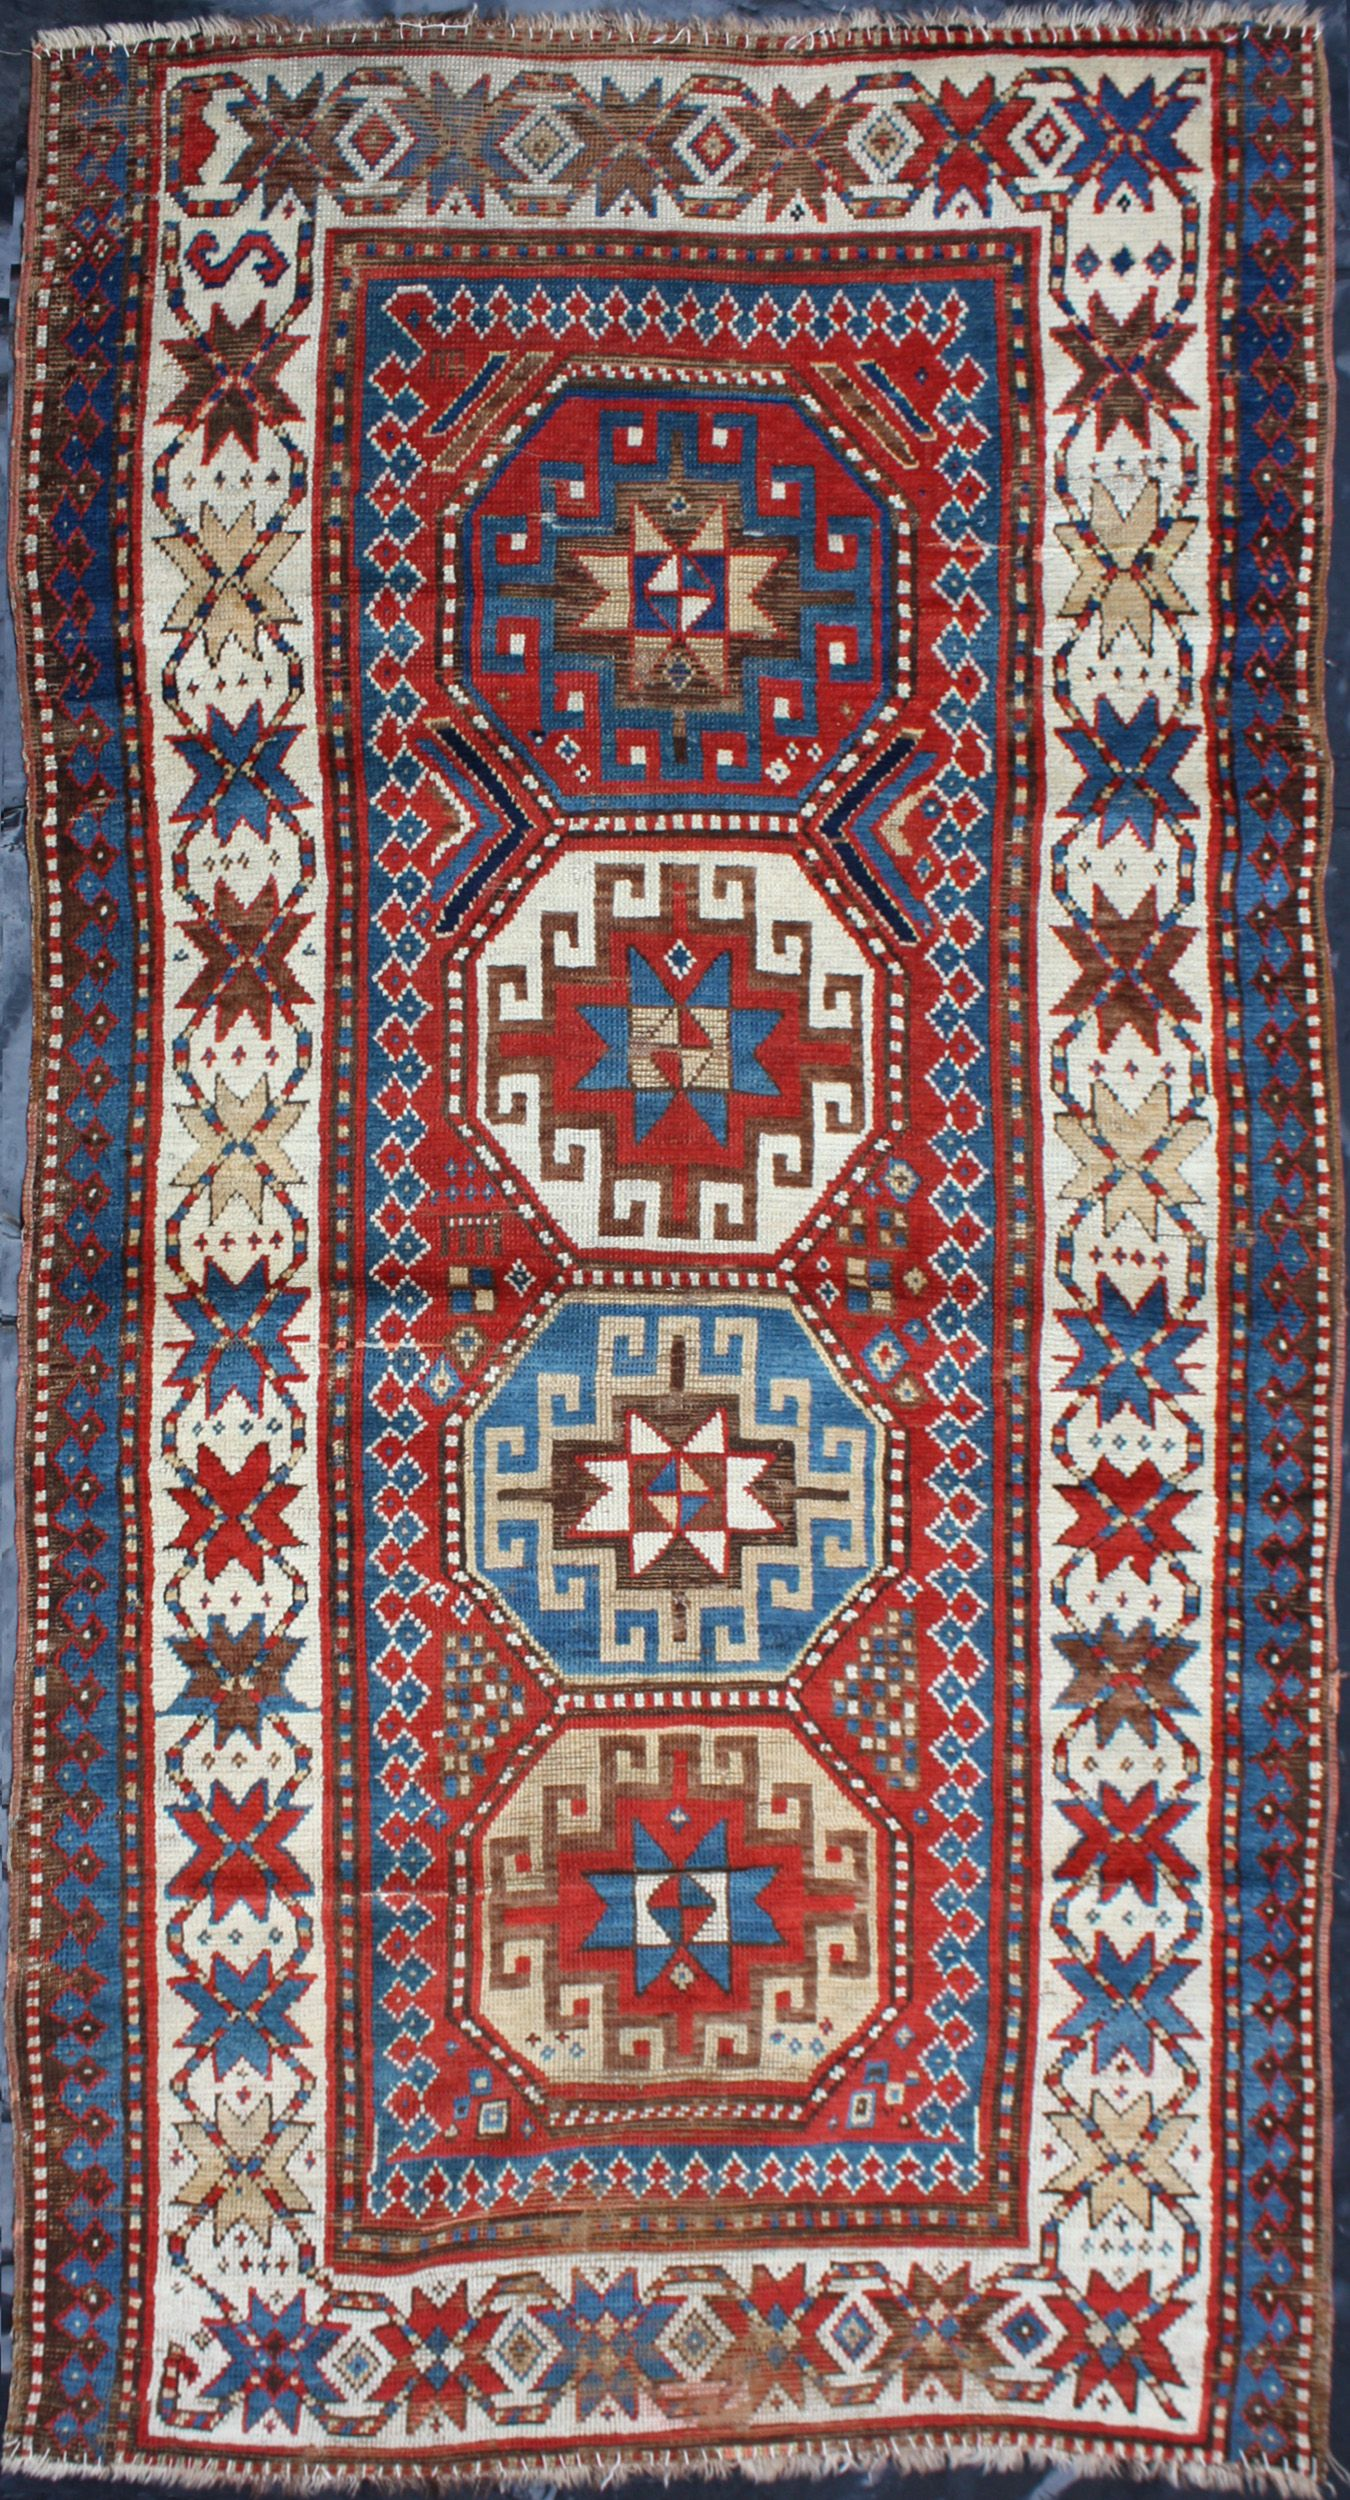 kazak rugs caucasian rug kazak carpet rugs carpets pinterest teppiche. Black Bedroom Furniture Sets. Home Design Ideas